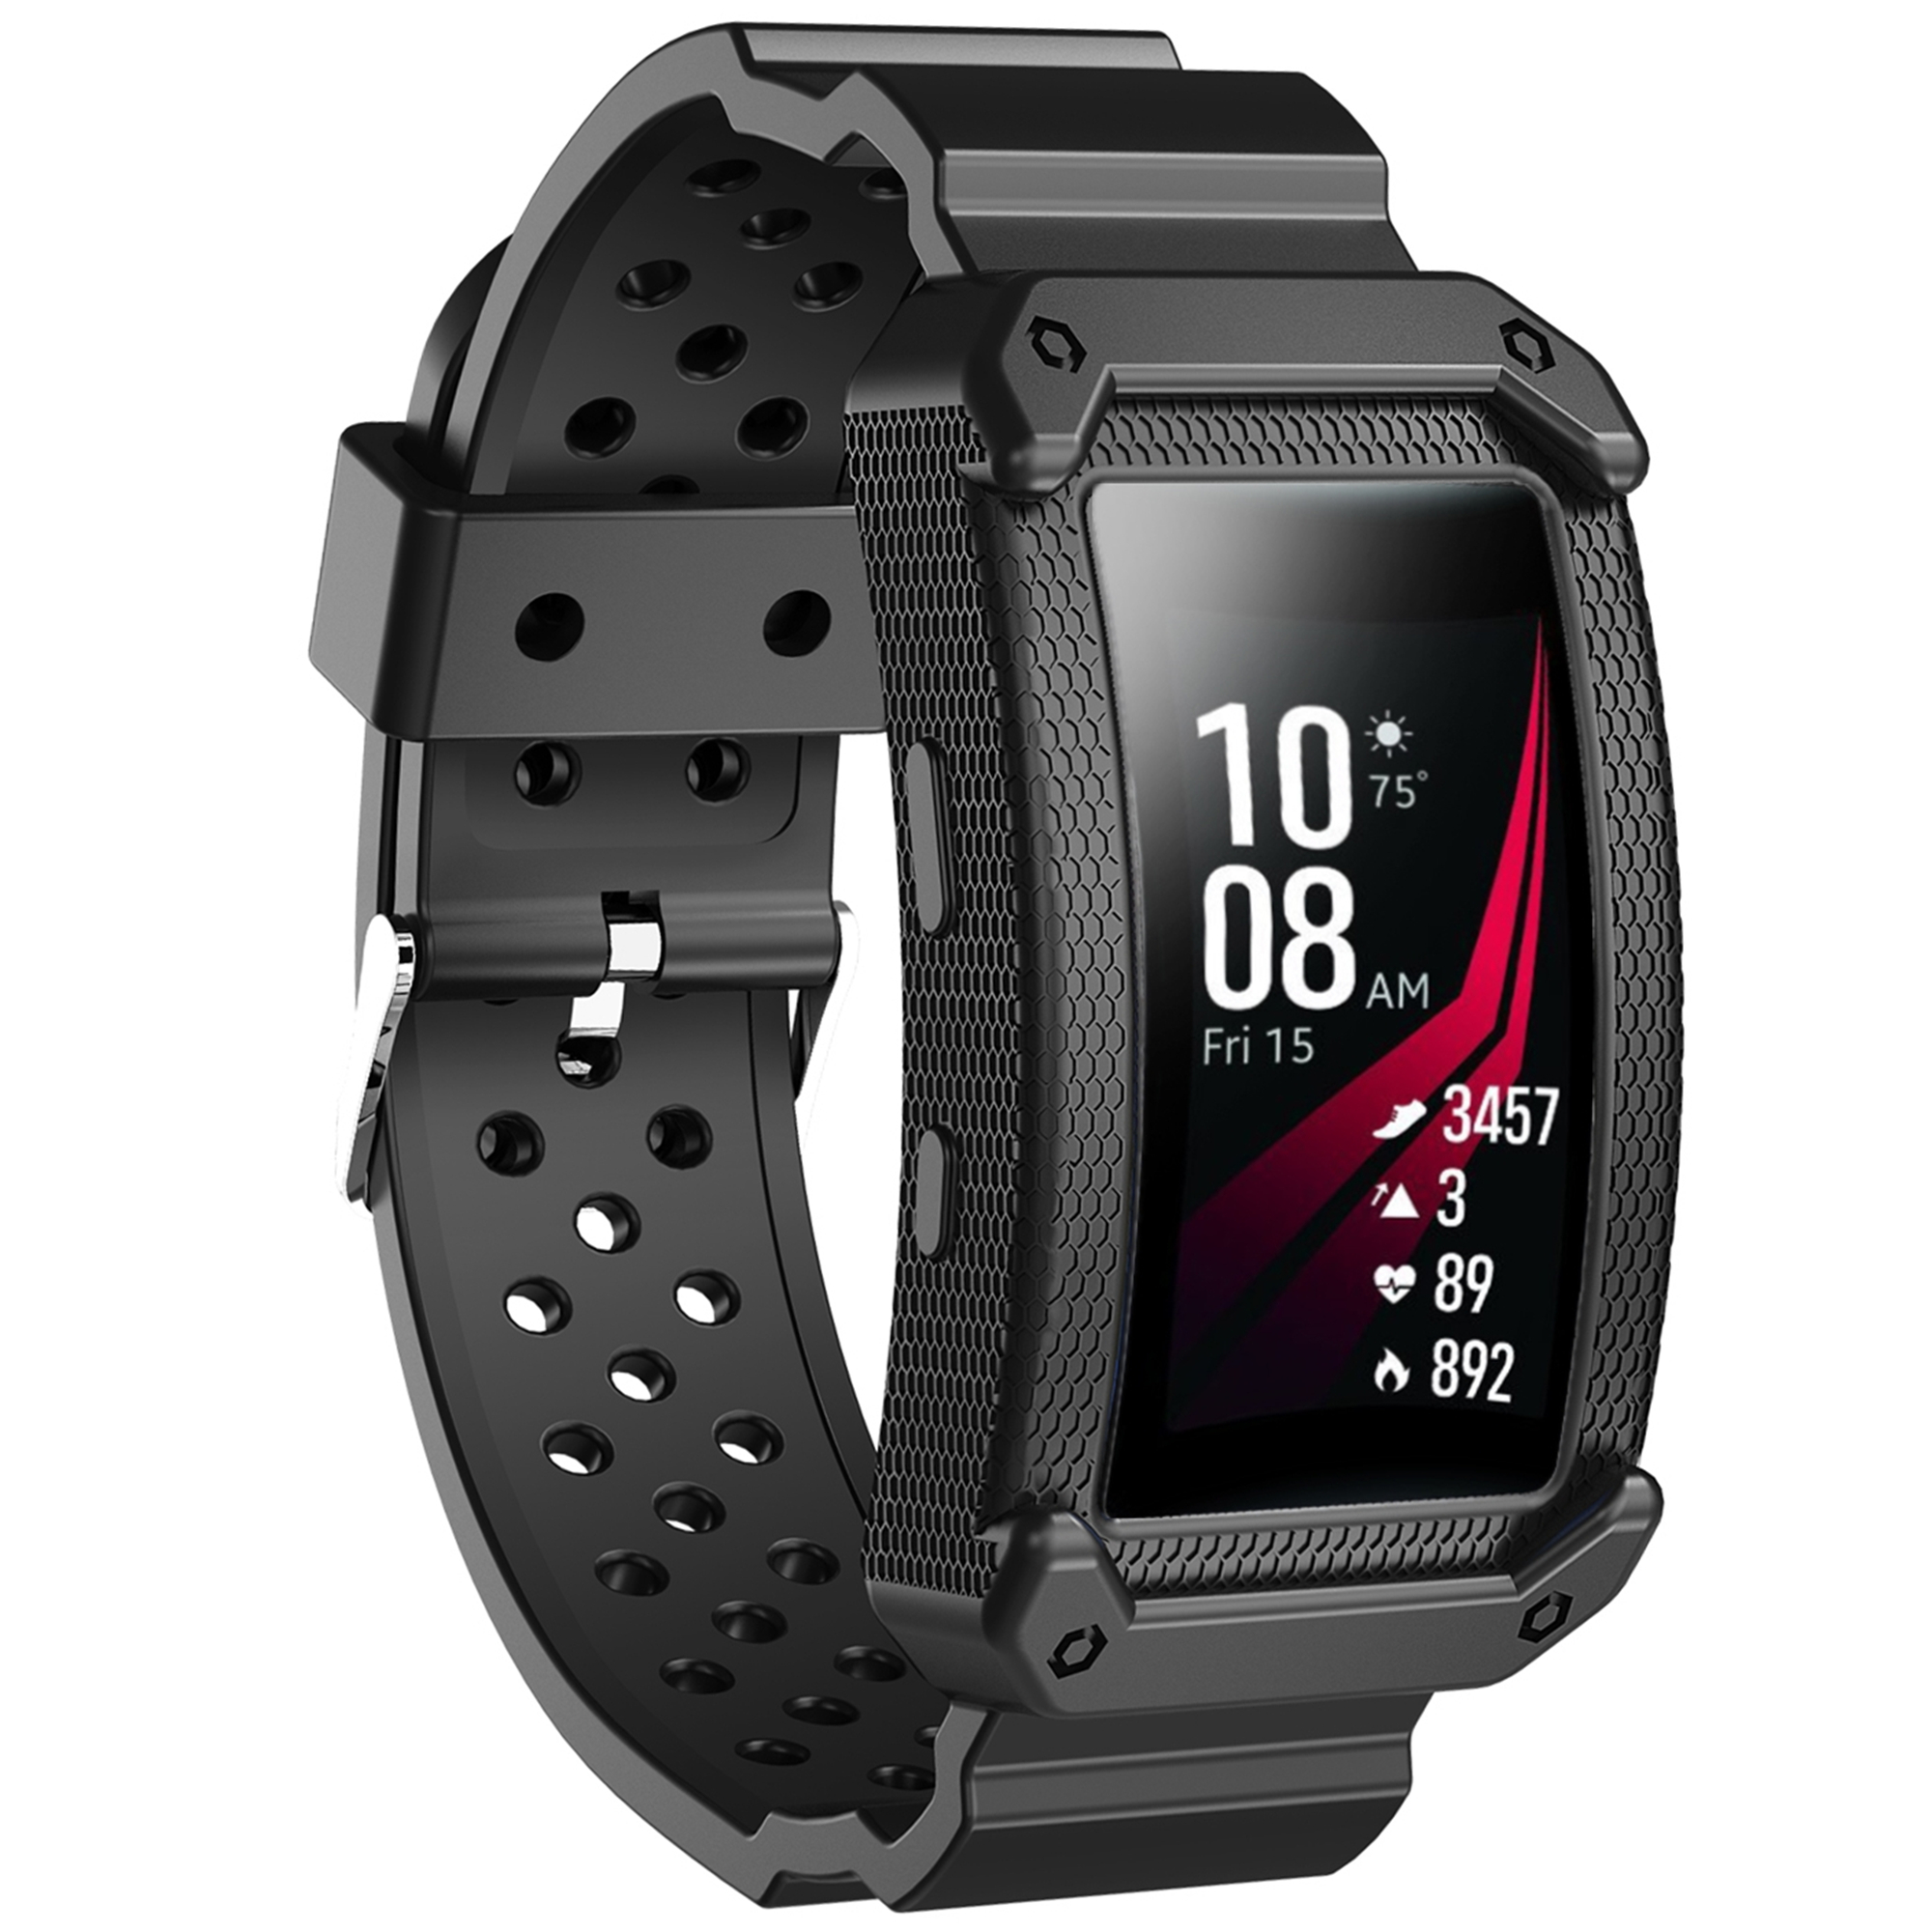 Moretek Gear Fit 2 Watch Bands Protective Frame Case Replacement Bands for Samsung Gear fit 2/ Gear Fit2 Pro Smartwatch (Black)